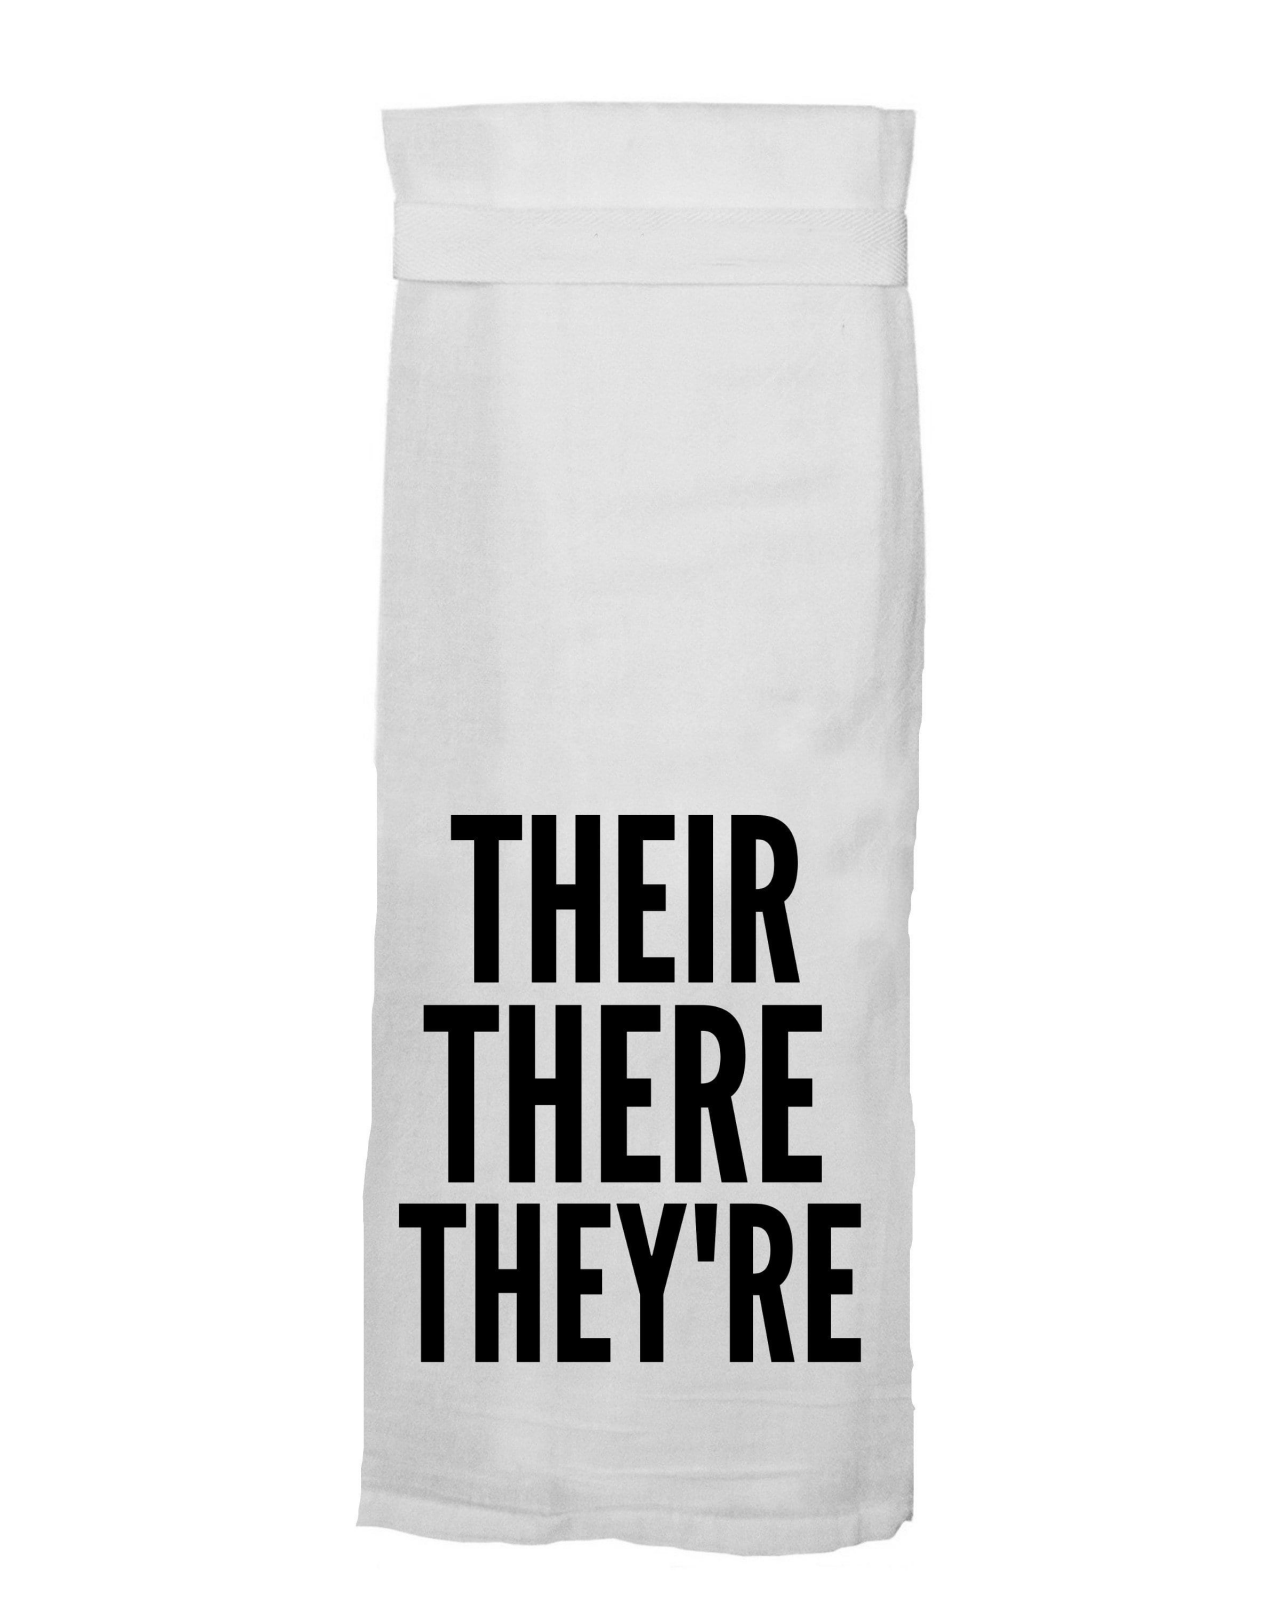 Flour Sack Towel - Their There They're